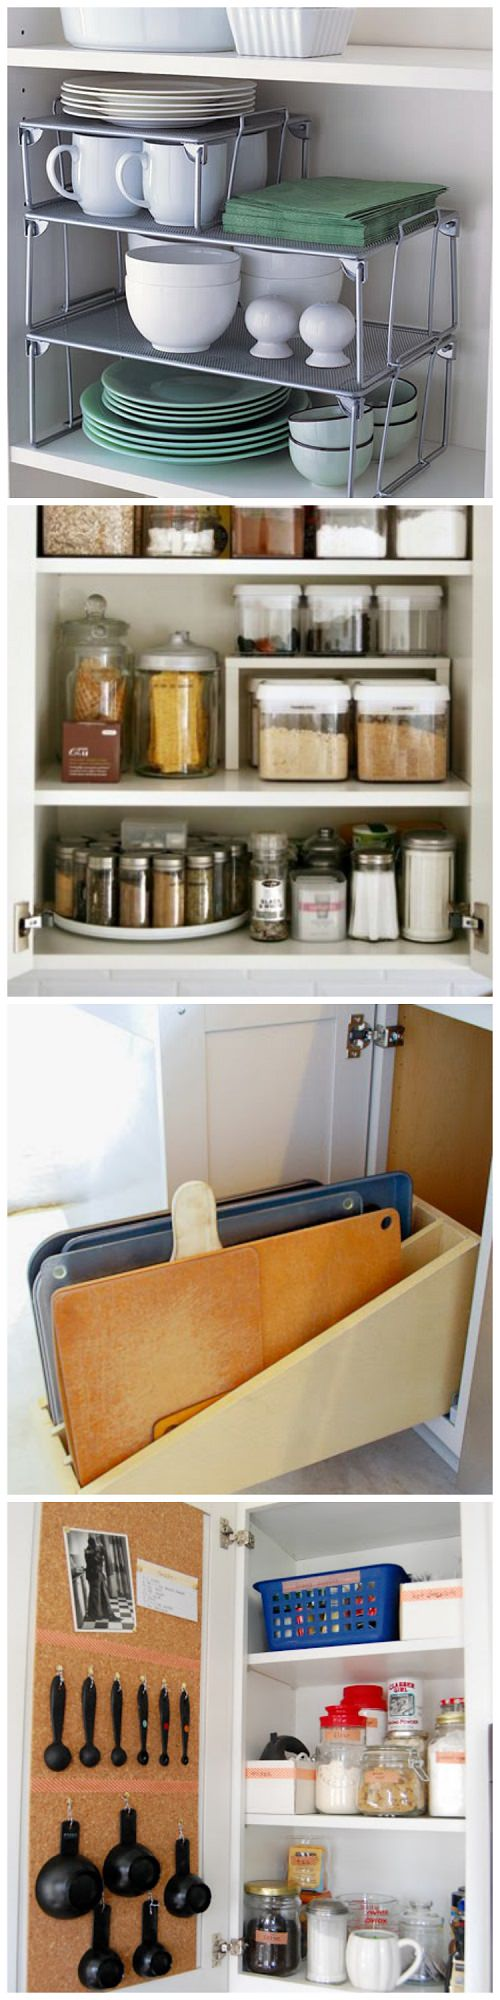 If you are looking to organize your kitchen, these amazing ideas will help you make the most out of your cabinets.